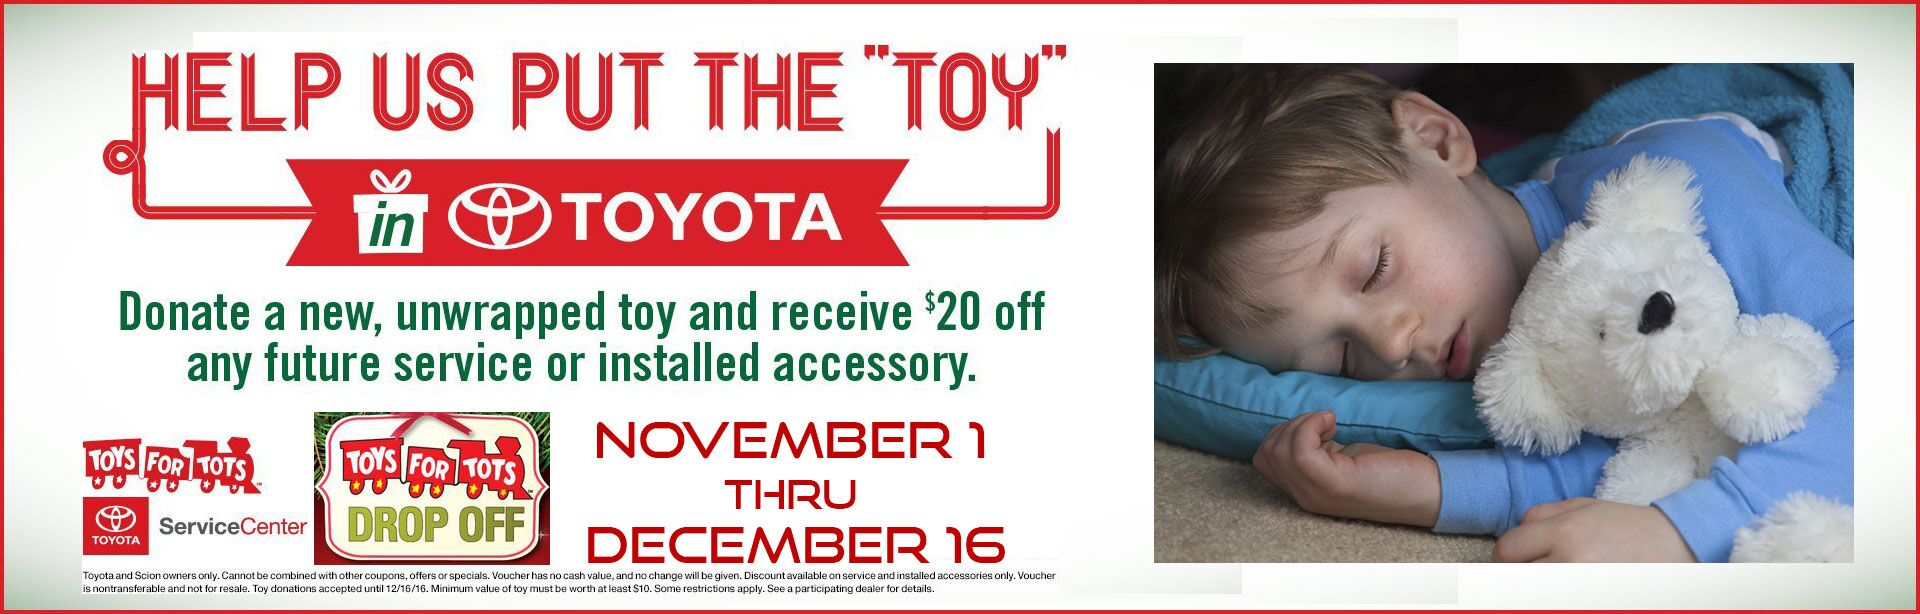 Toyota Toys for Tots